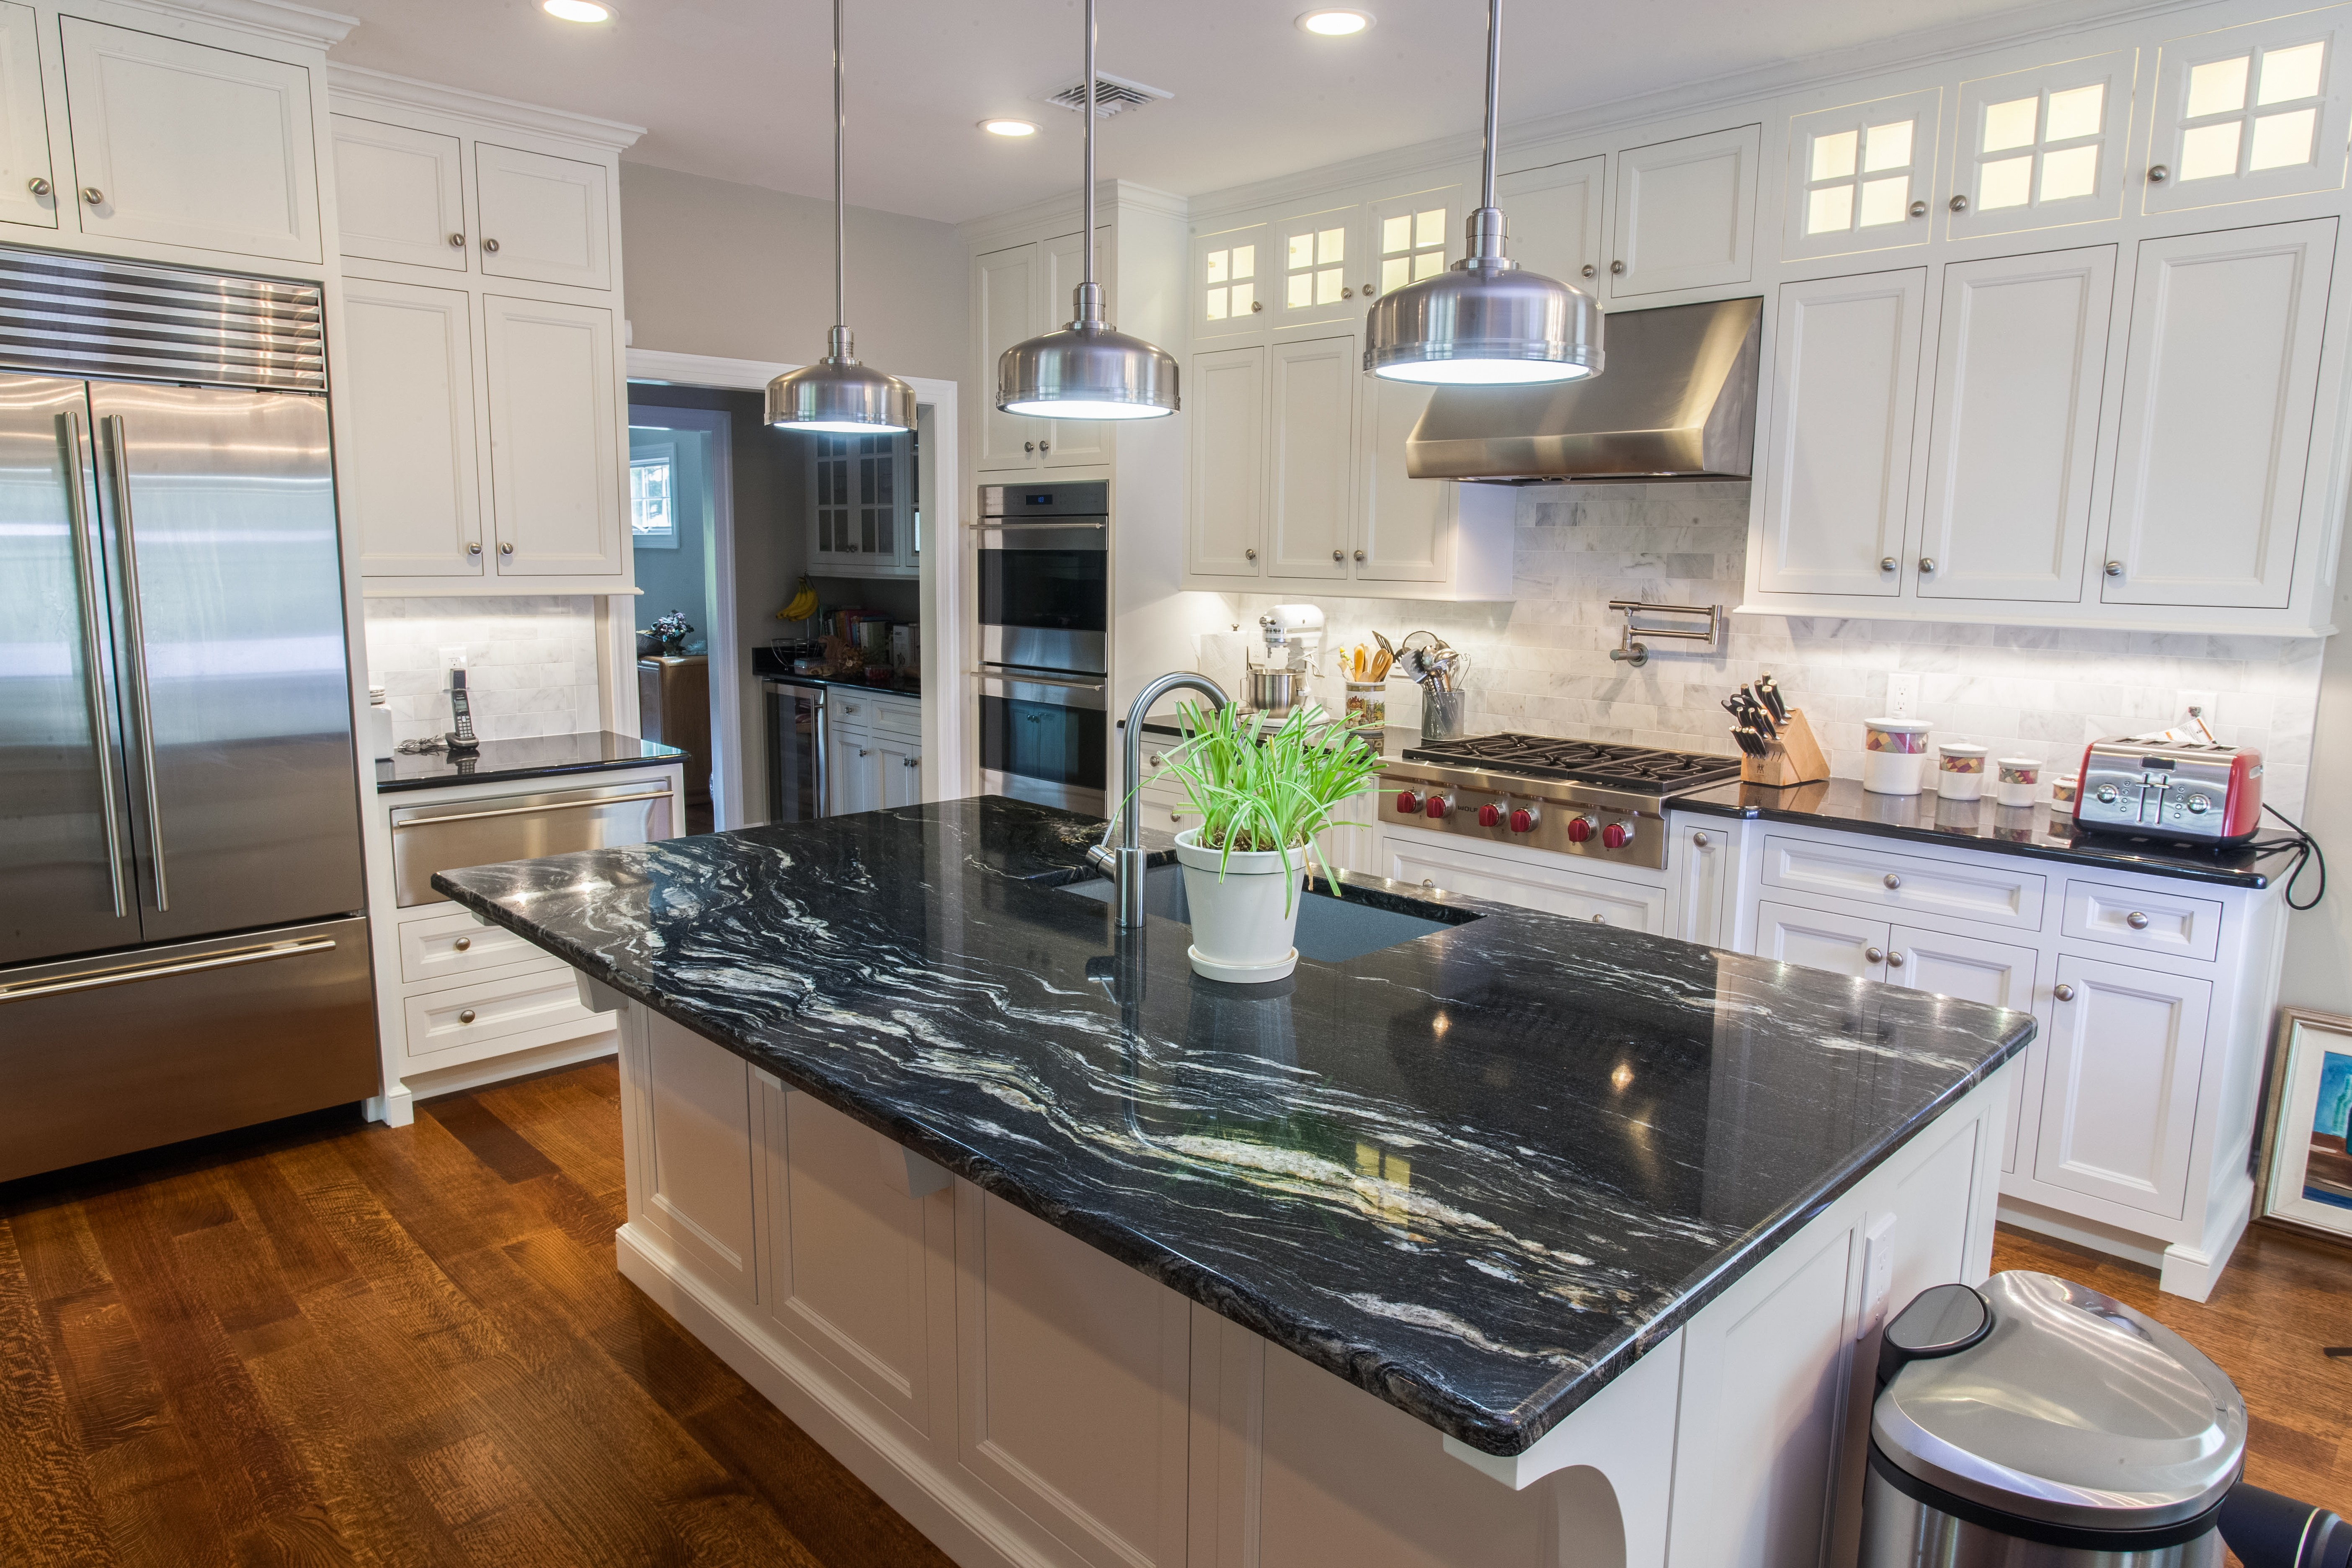 Replace Countertops Or Paint Cabinets First